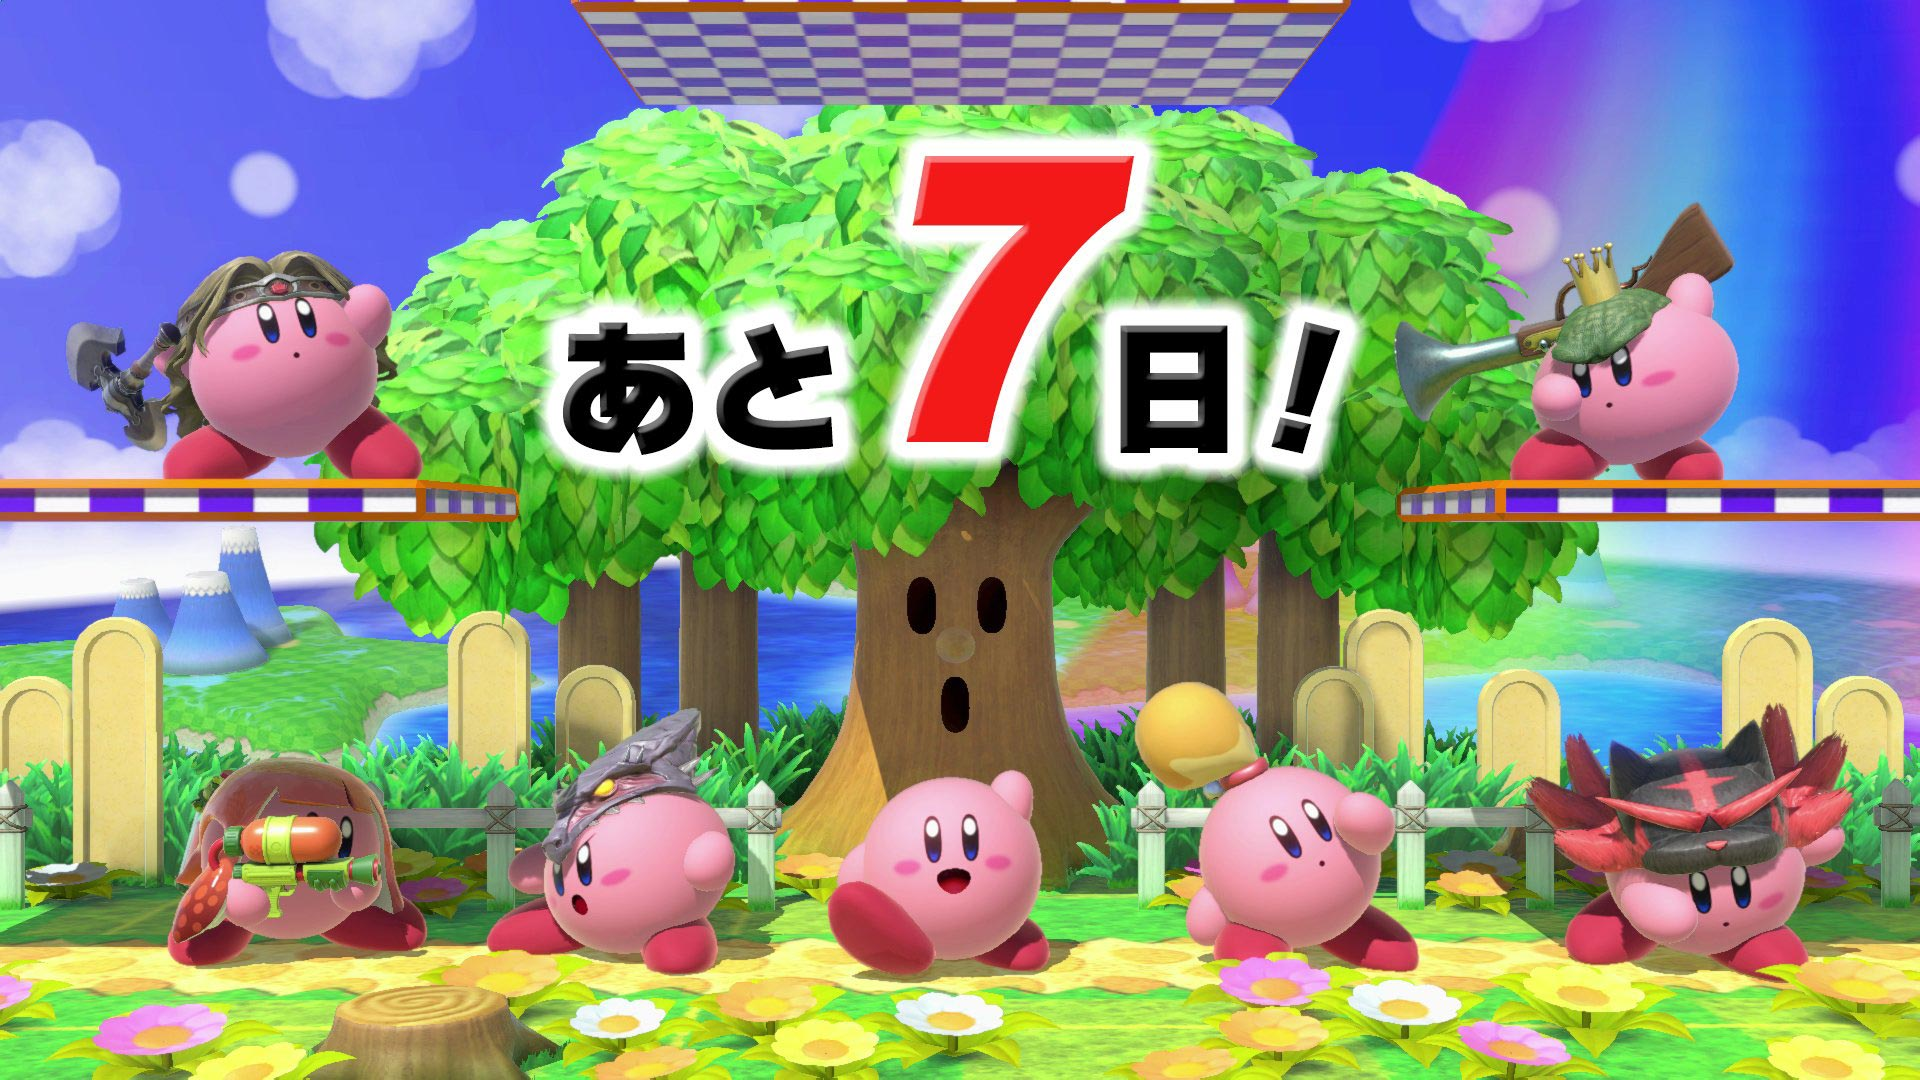 Super Smash Bros. Ultimate countdown art 6 out of 9 image gallery